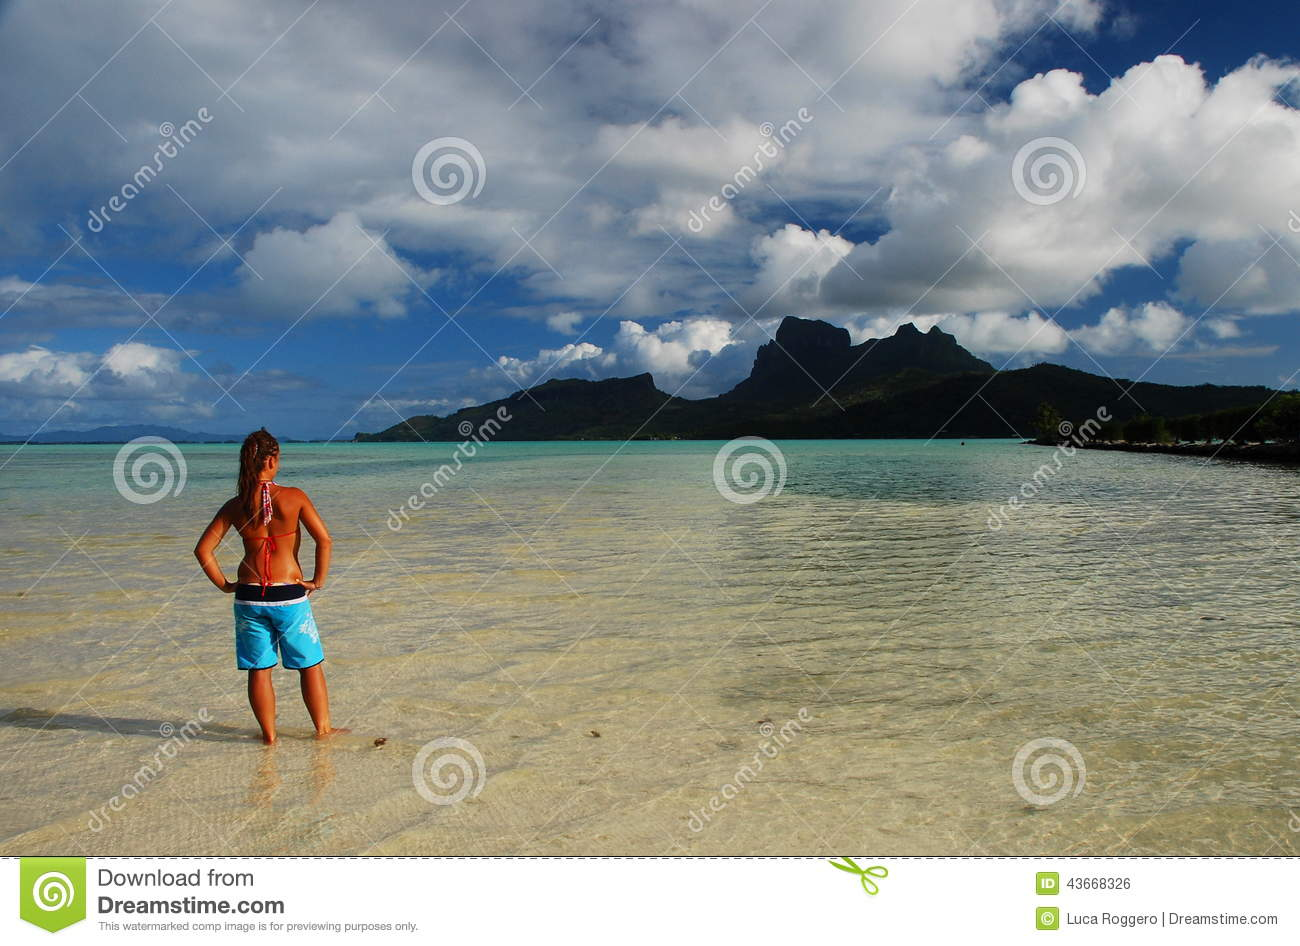 french polynesia the island of love In 2013, zika virus was found in french polynesia, including the island of tahiti (above) some 20,000 inhabitants were diagnosed with the disease.